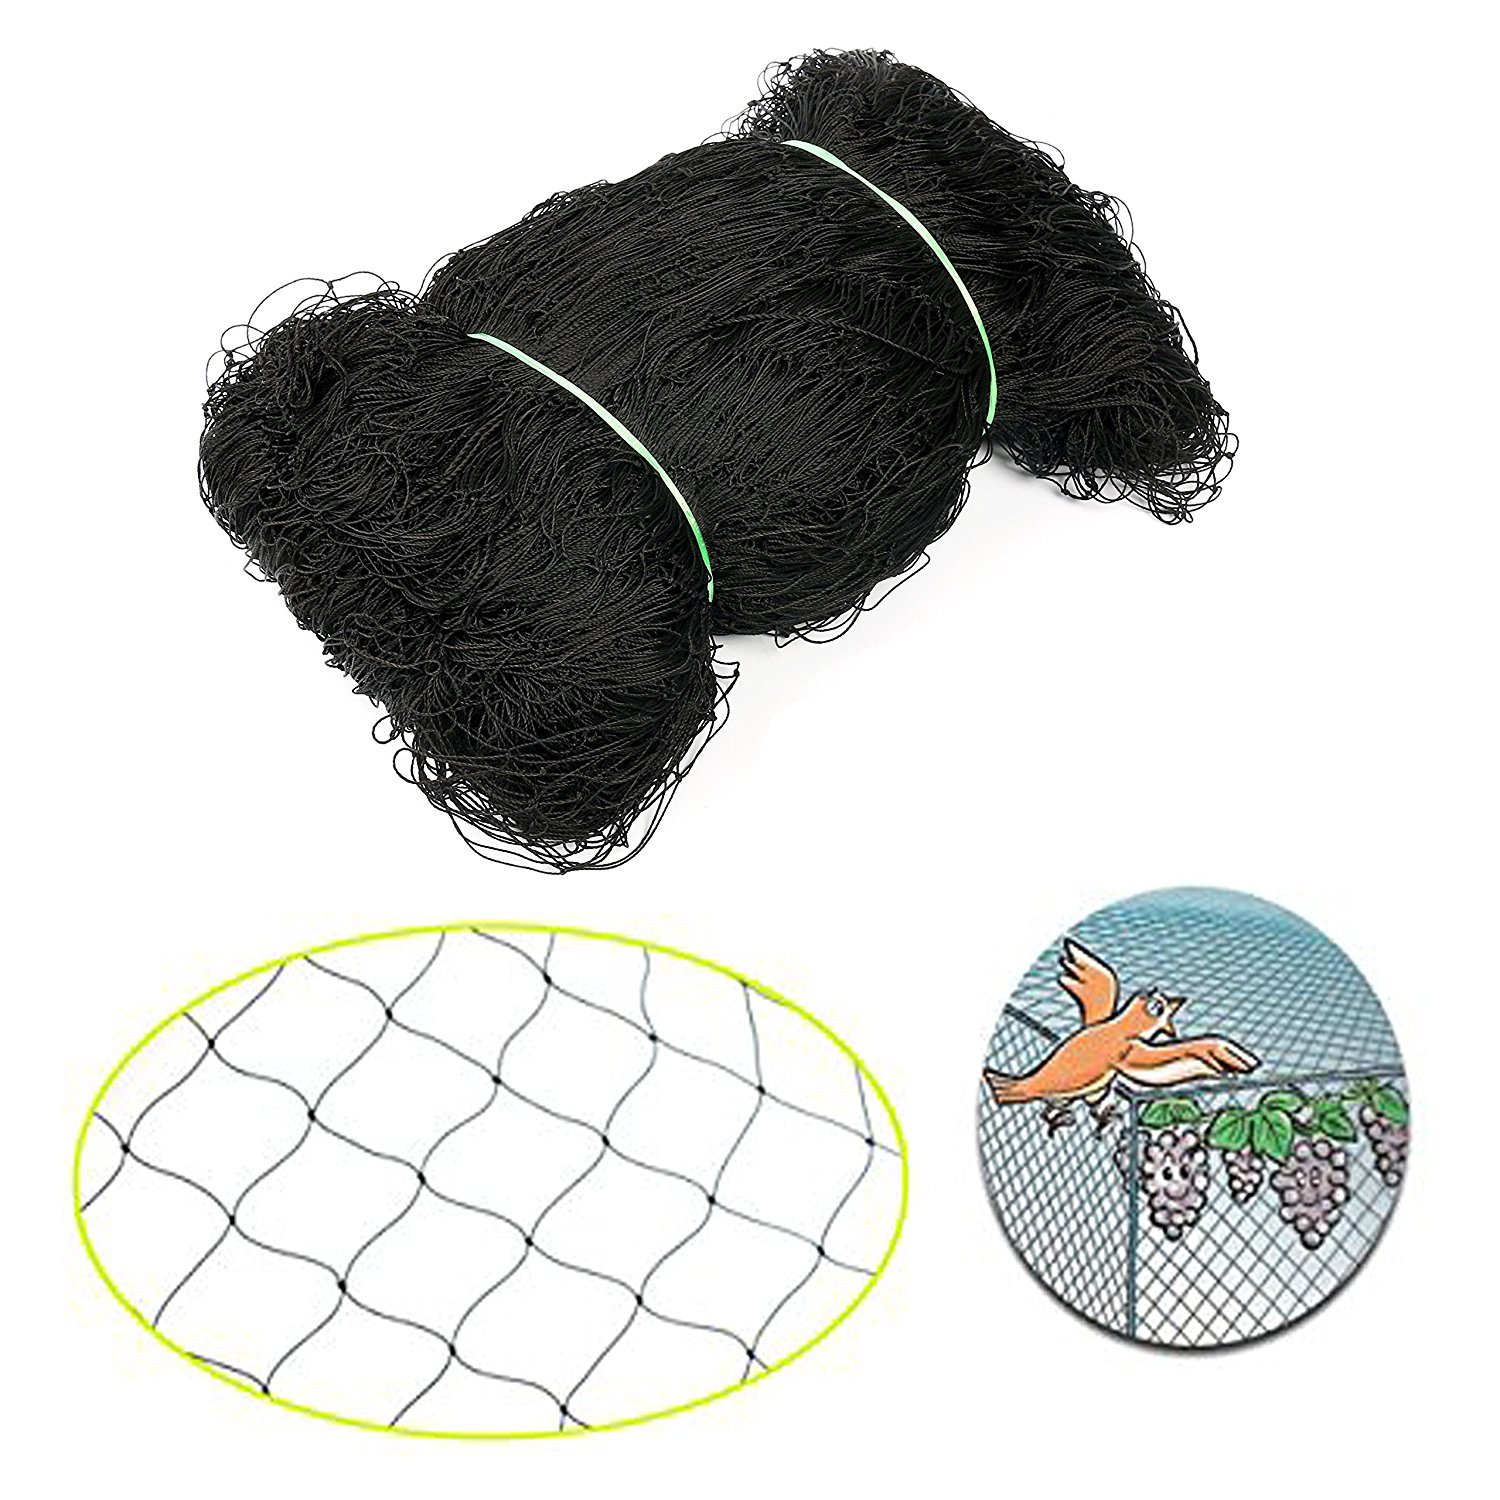 Baikalo 50' X 50' Net Netting for Bird Poultry Aviary Game Pens New 2.4'' Square Mesh Size